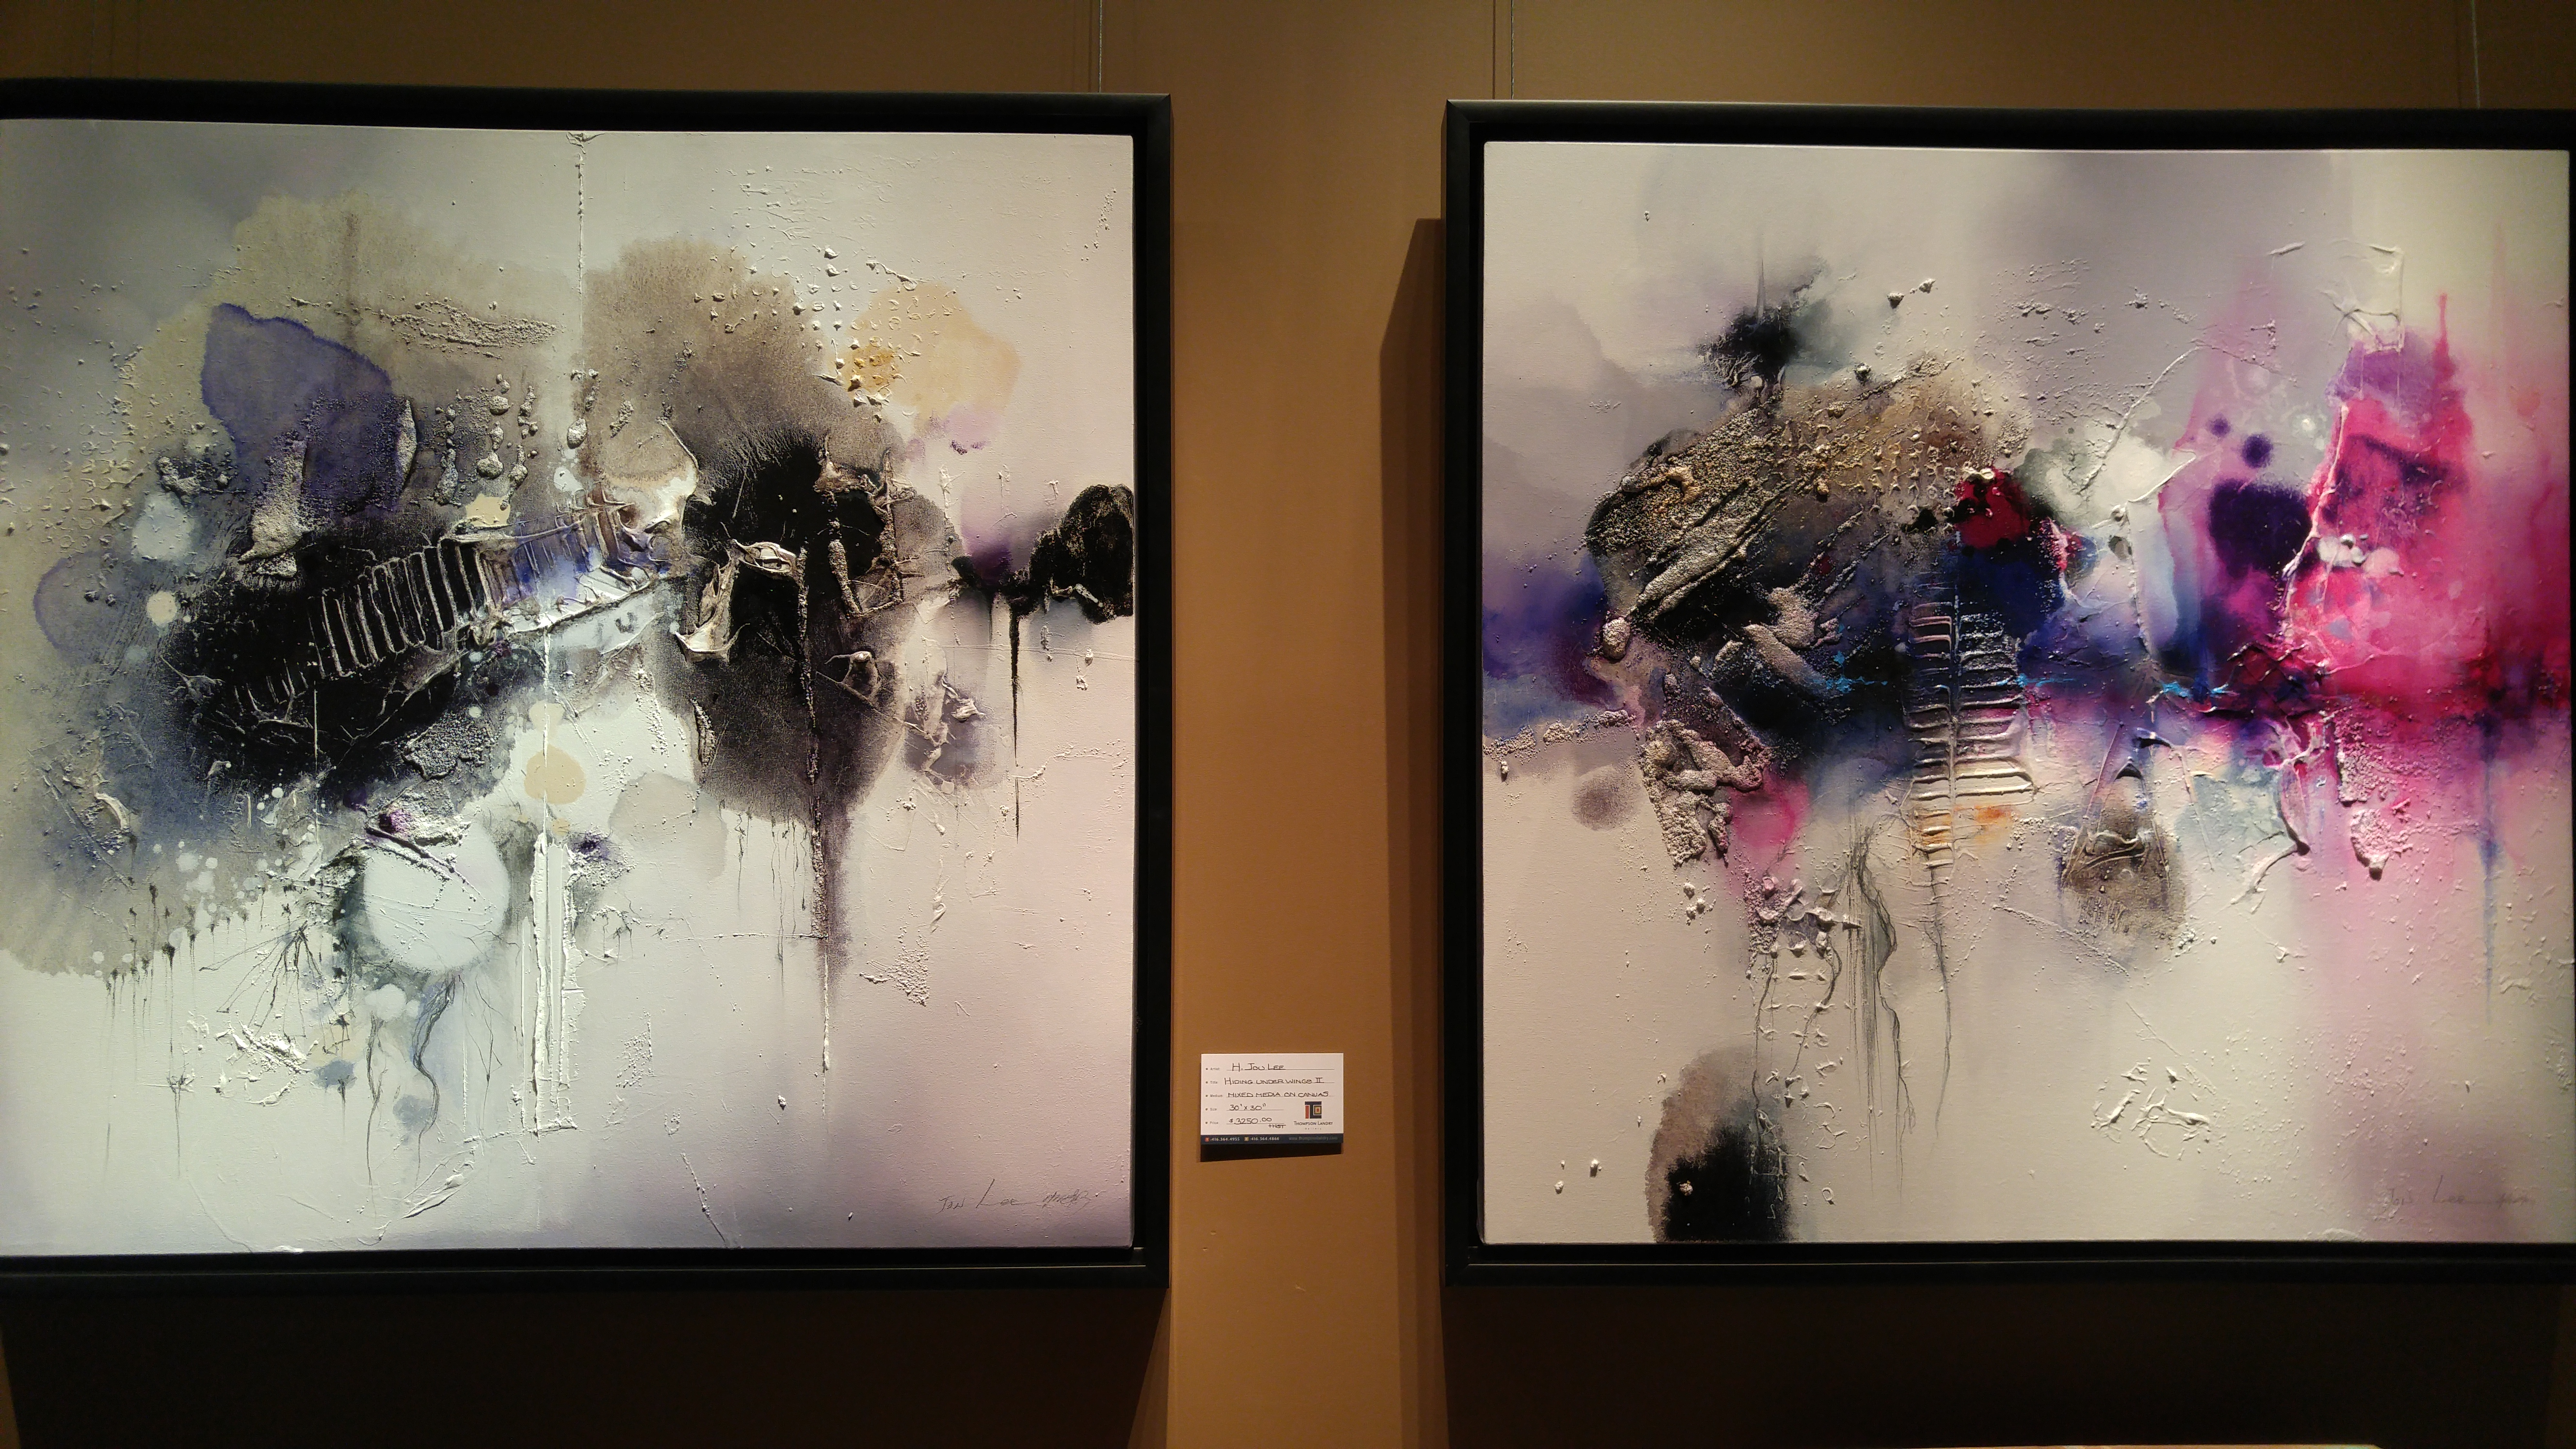 Two abstract paintings with black borders hanging on a yellow wall with an info card between them. The left one has black, grey, purple, and yellow splashes of colour on a white canvas. The right one has black, purple, pink, and yellow splashes of colour on a white canvas.